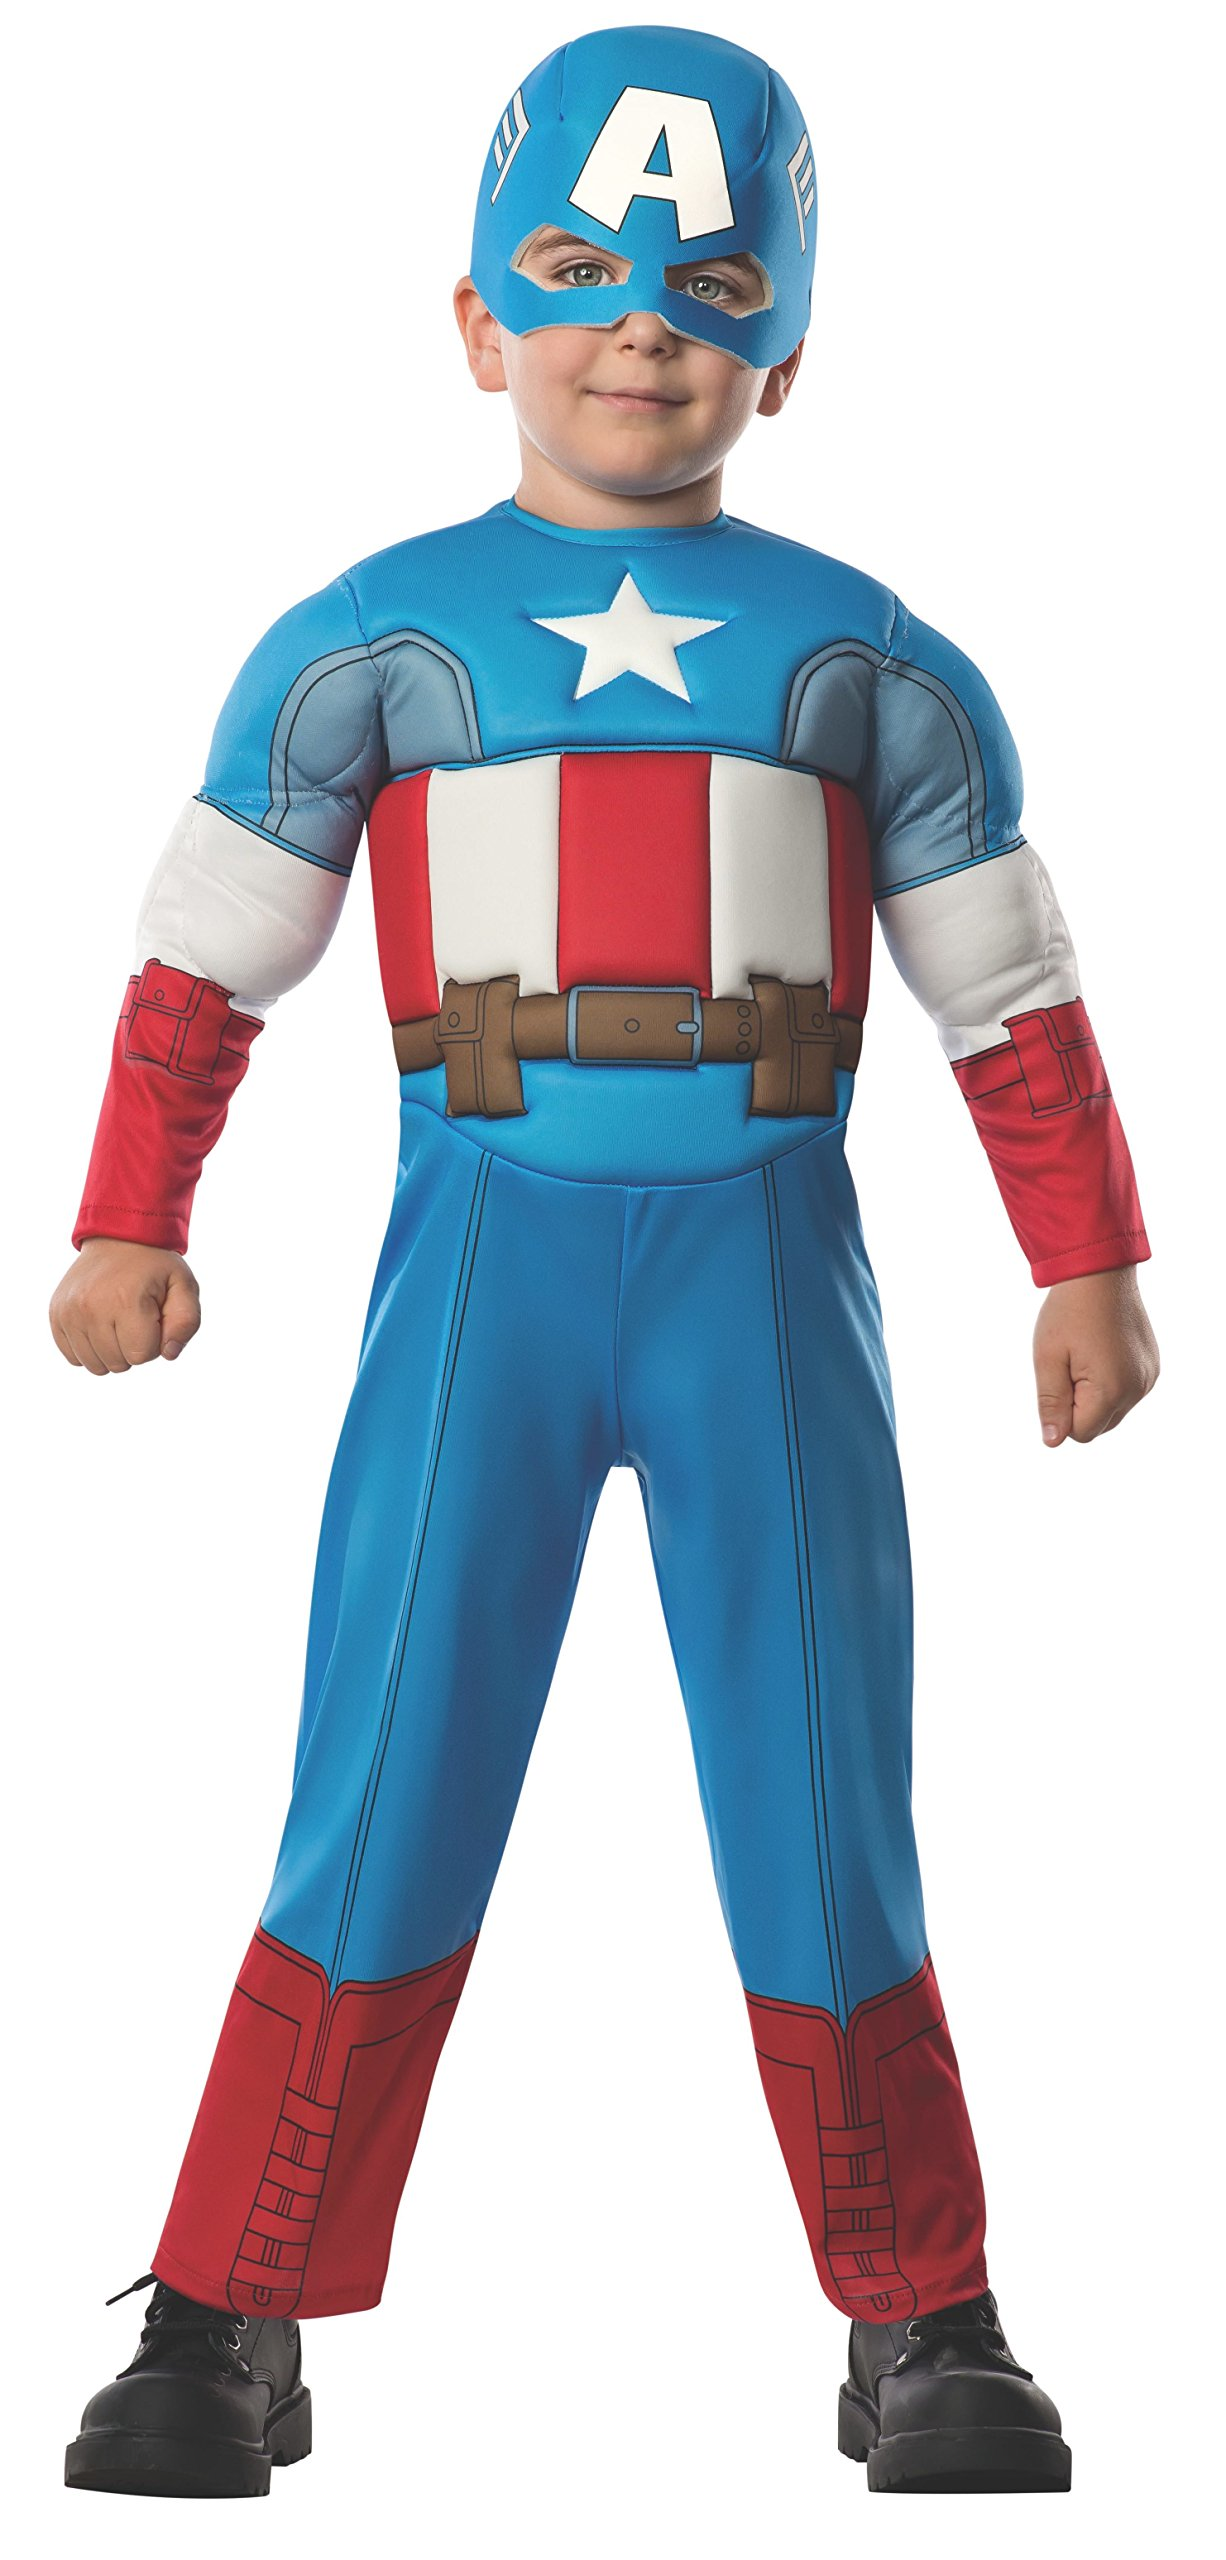 Rubie's Marvel Super Hero Adventure's Muscle Chest Costume, Captain America, Toddler